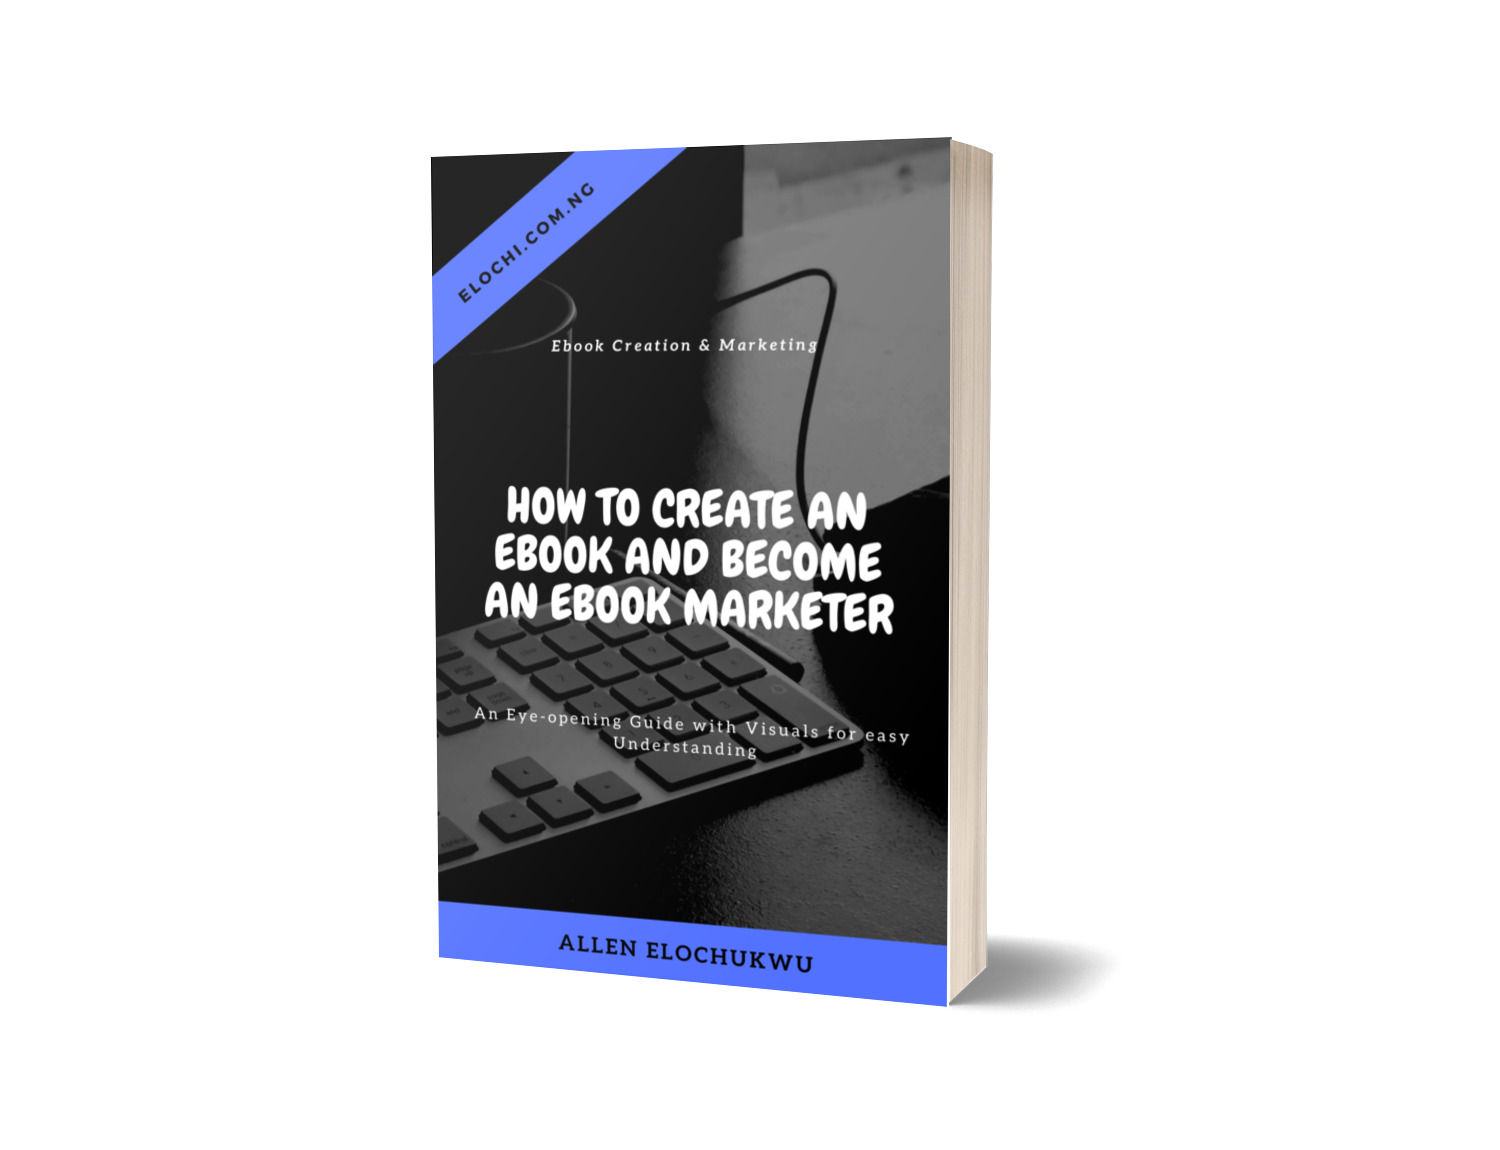 How to create and sell free ebooks online